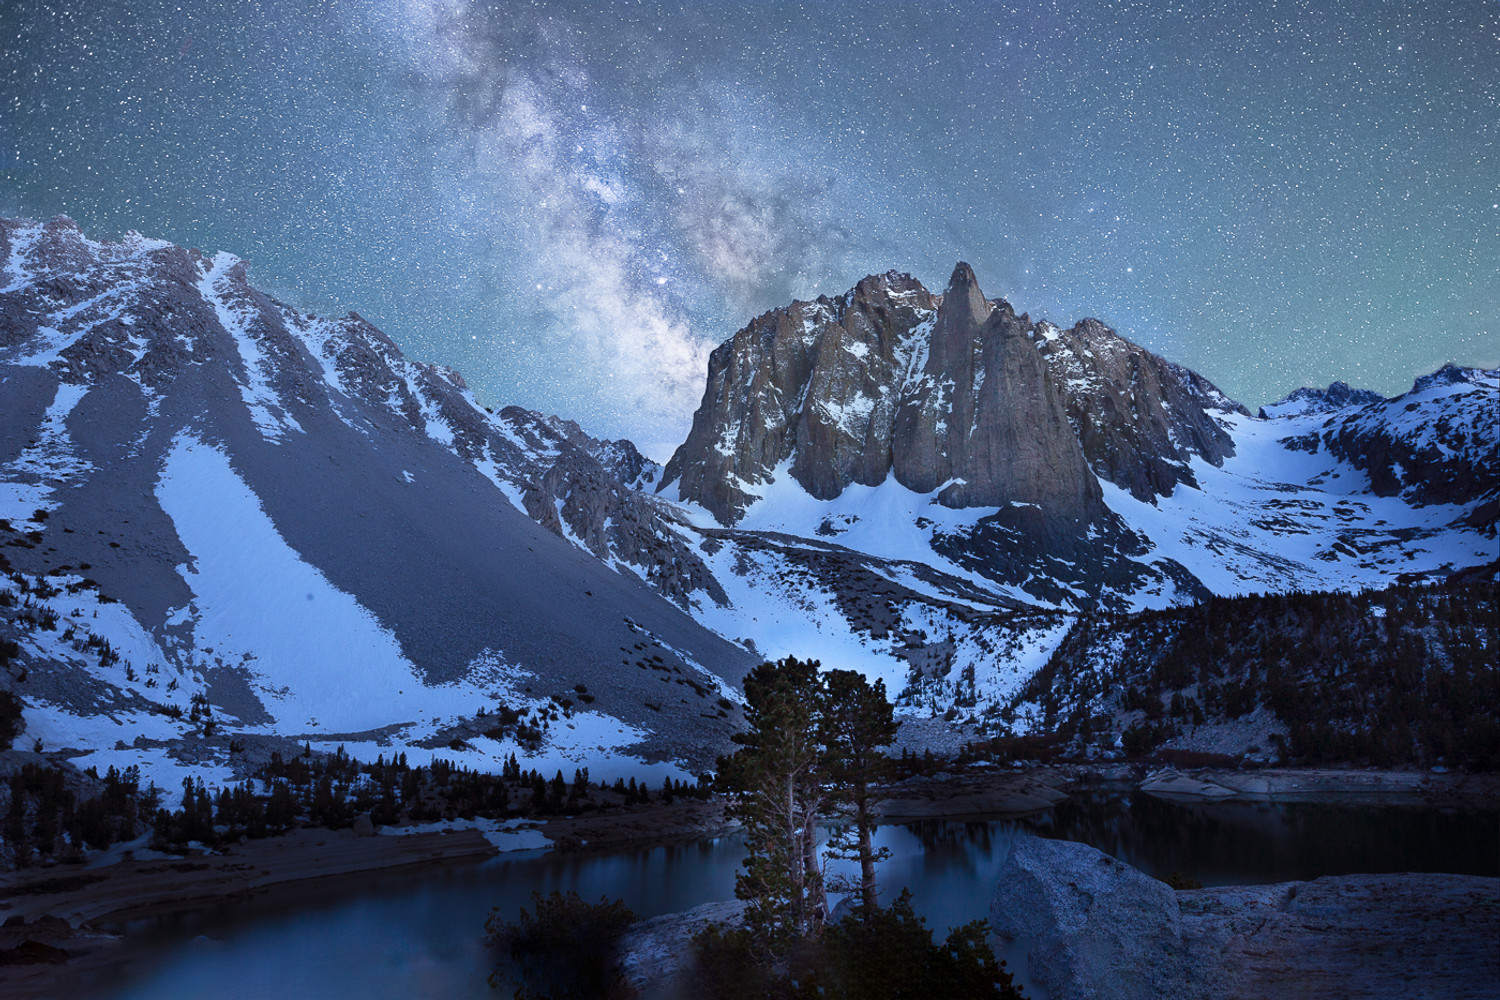 The Milky Way and the Palisades